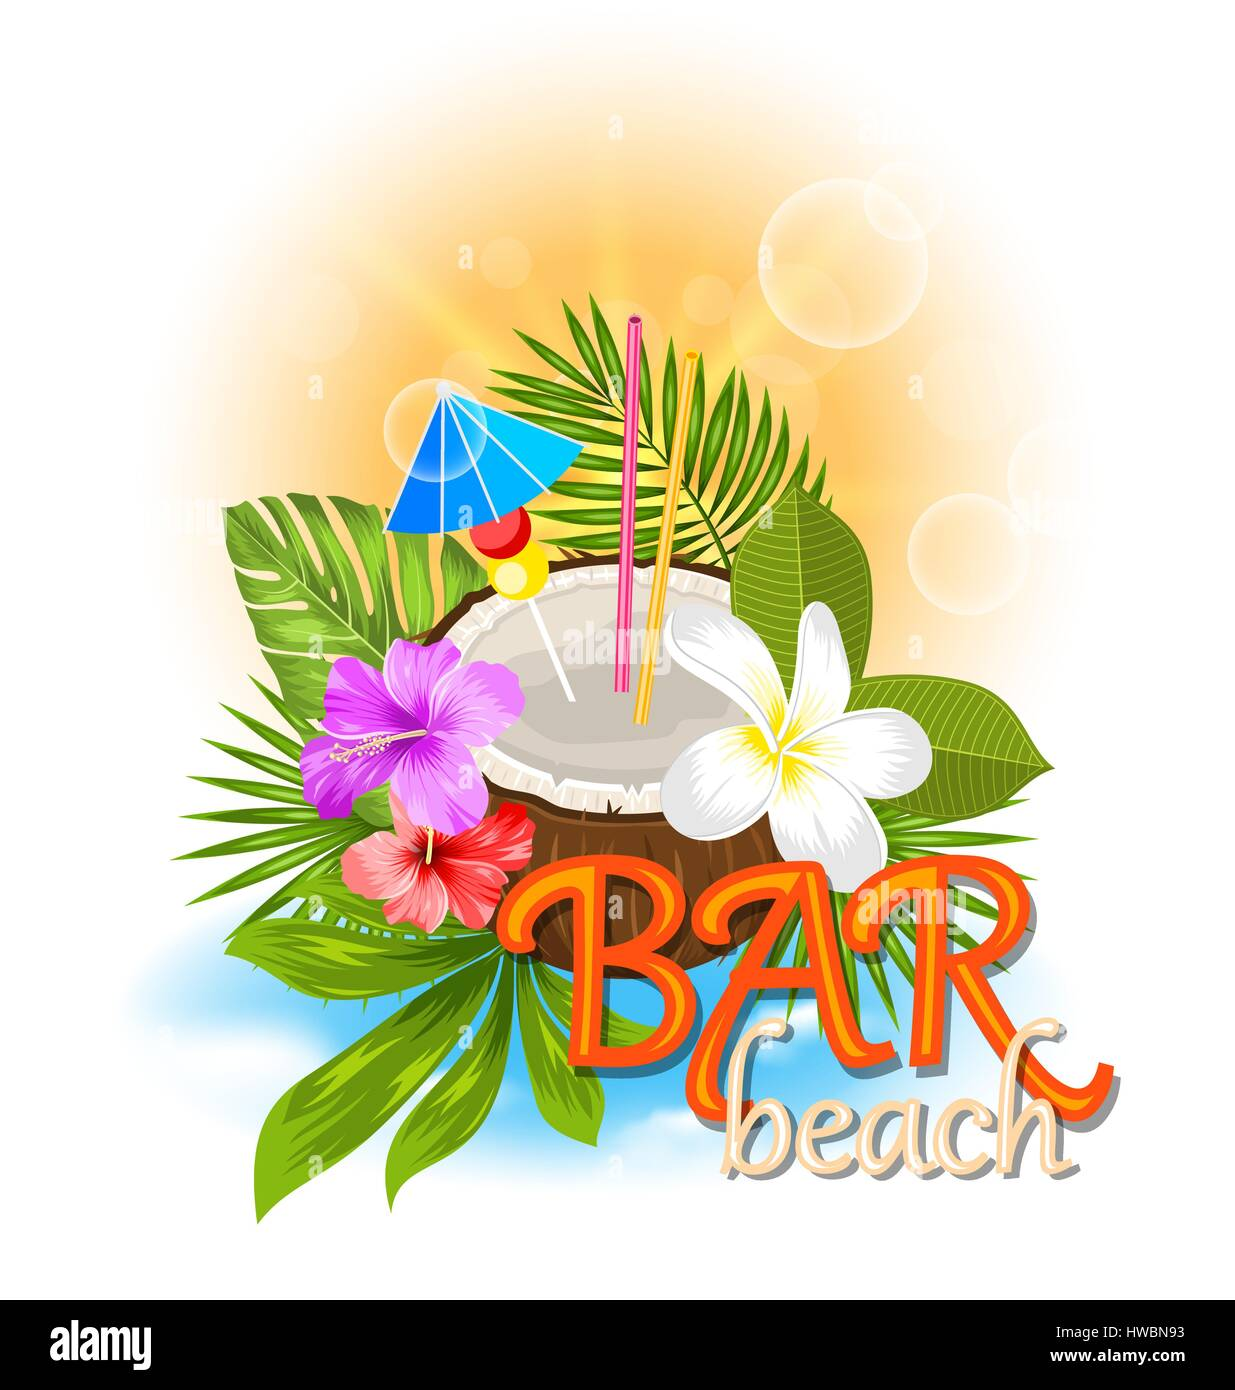 Beach Bar Background with Coconut Cocktail - Stock Image